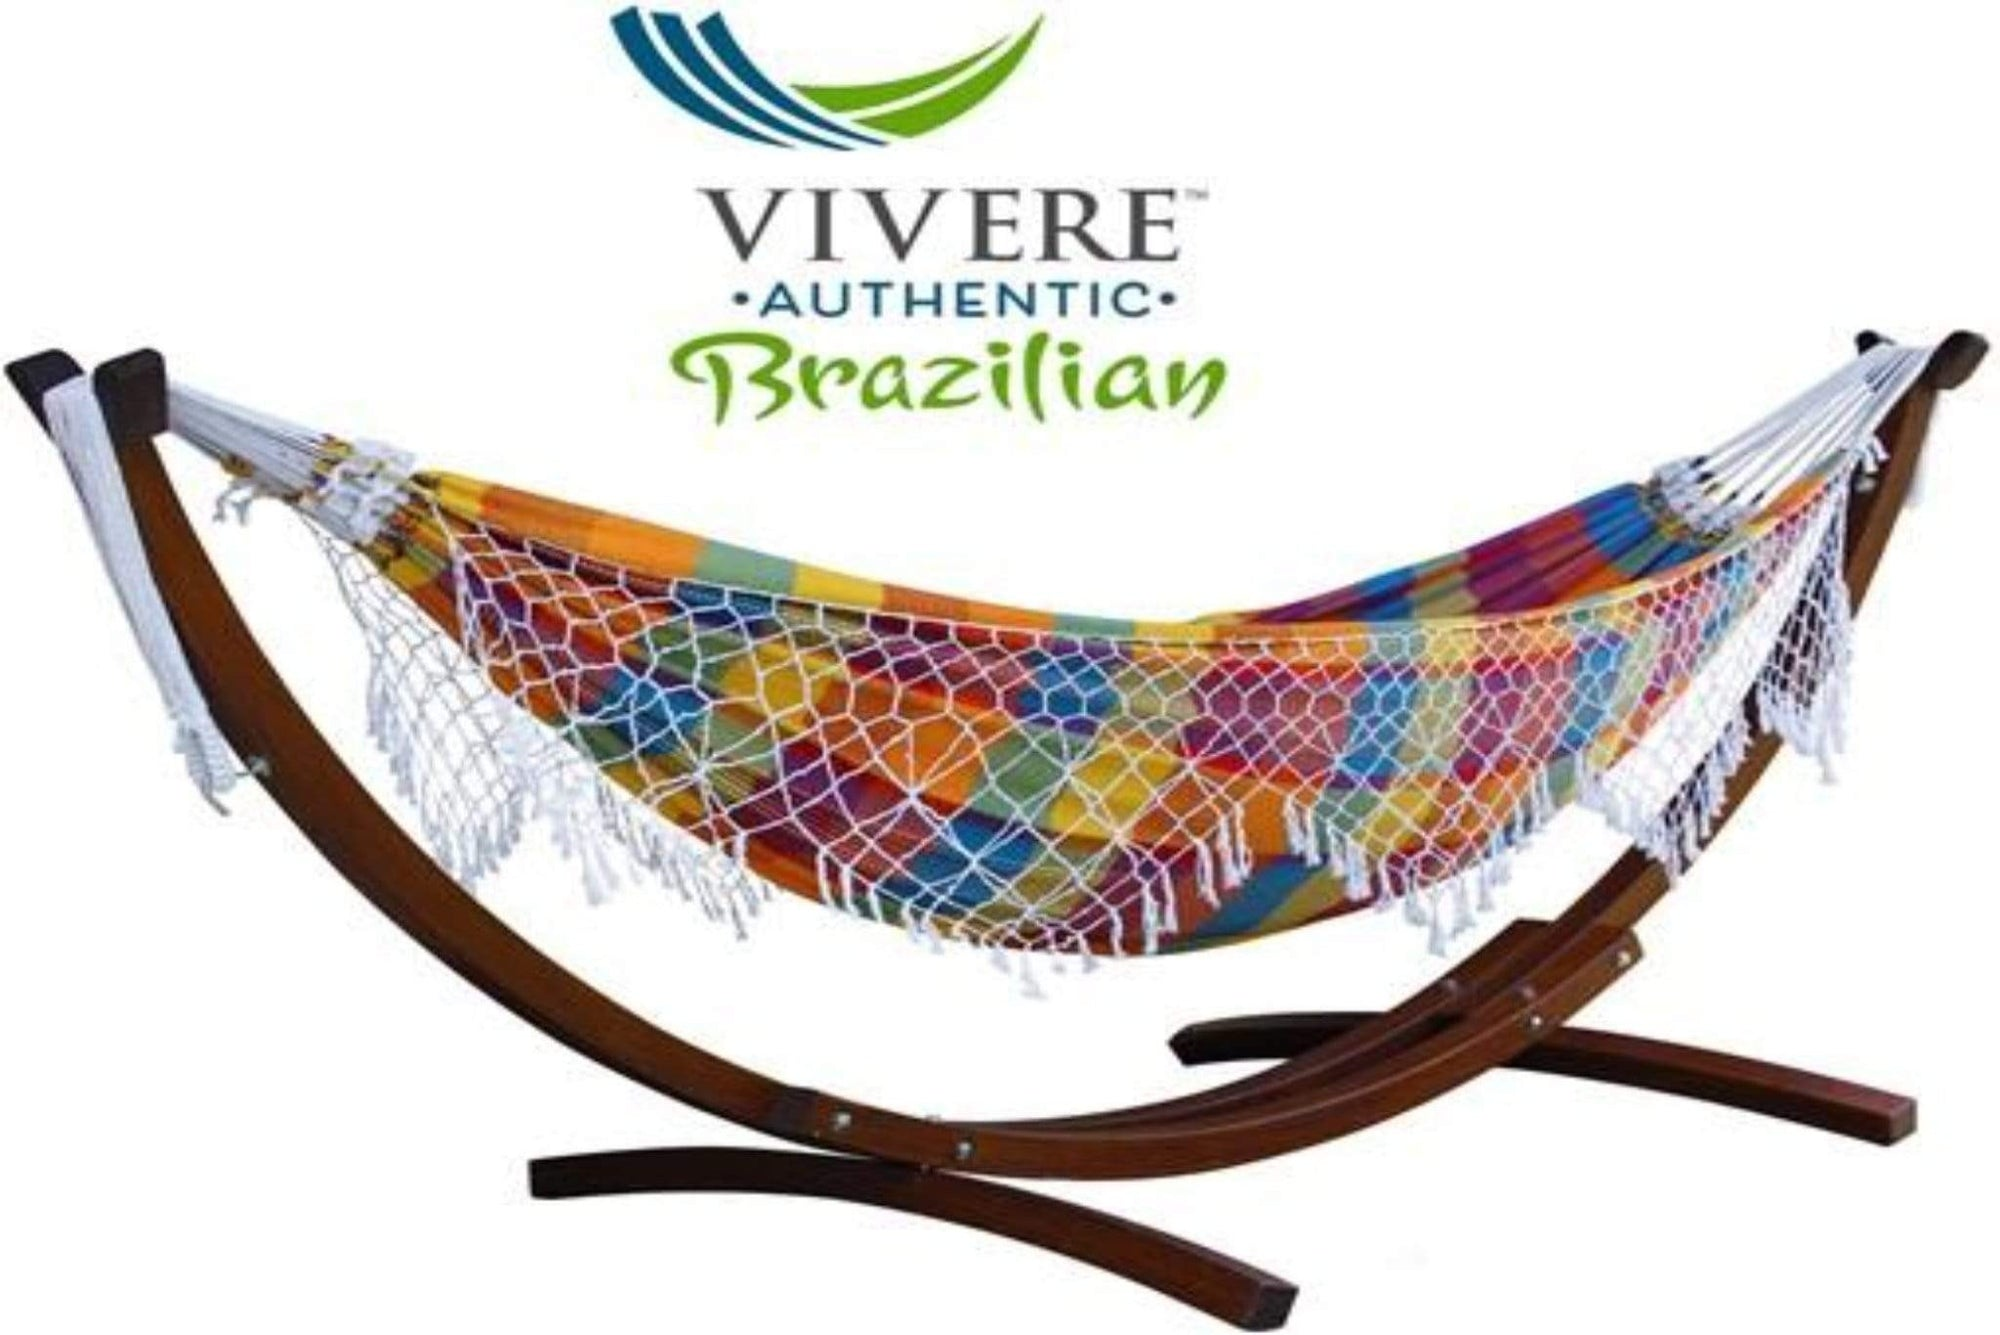 Vivere Sets Carnival Authentic Brazilian Hammock with 3m Solid Pine Arc Stand